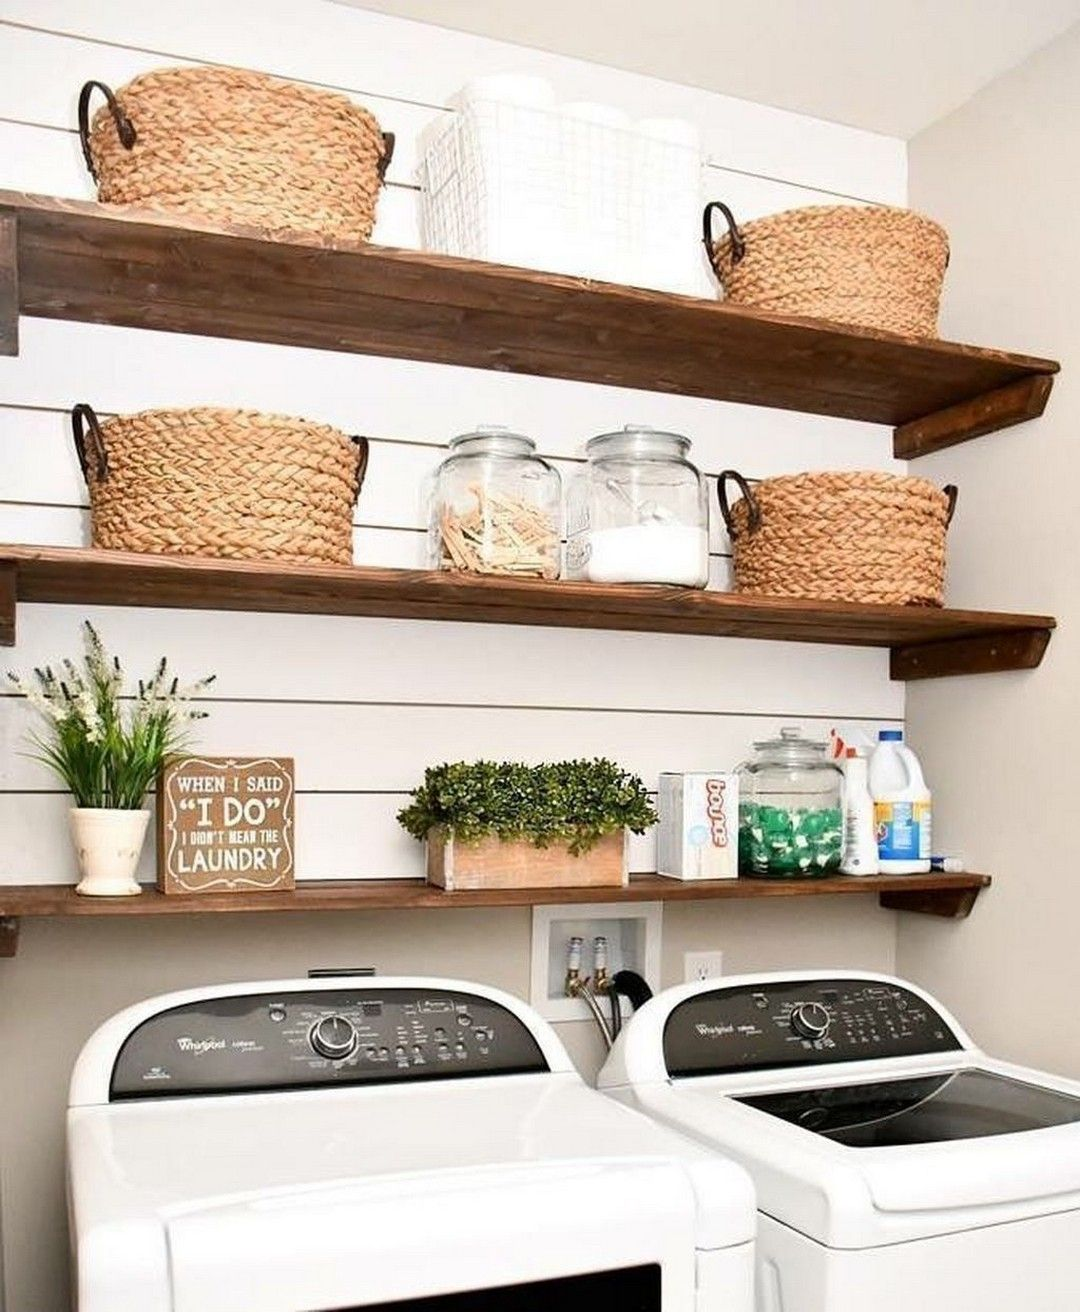 Best Laundry Room Location: 26 Smart Ideas To Build Efficiency Small Laundry Room